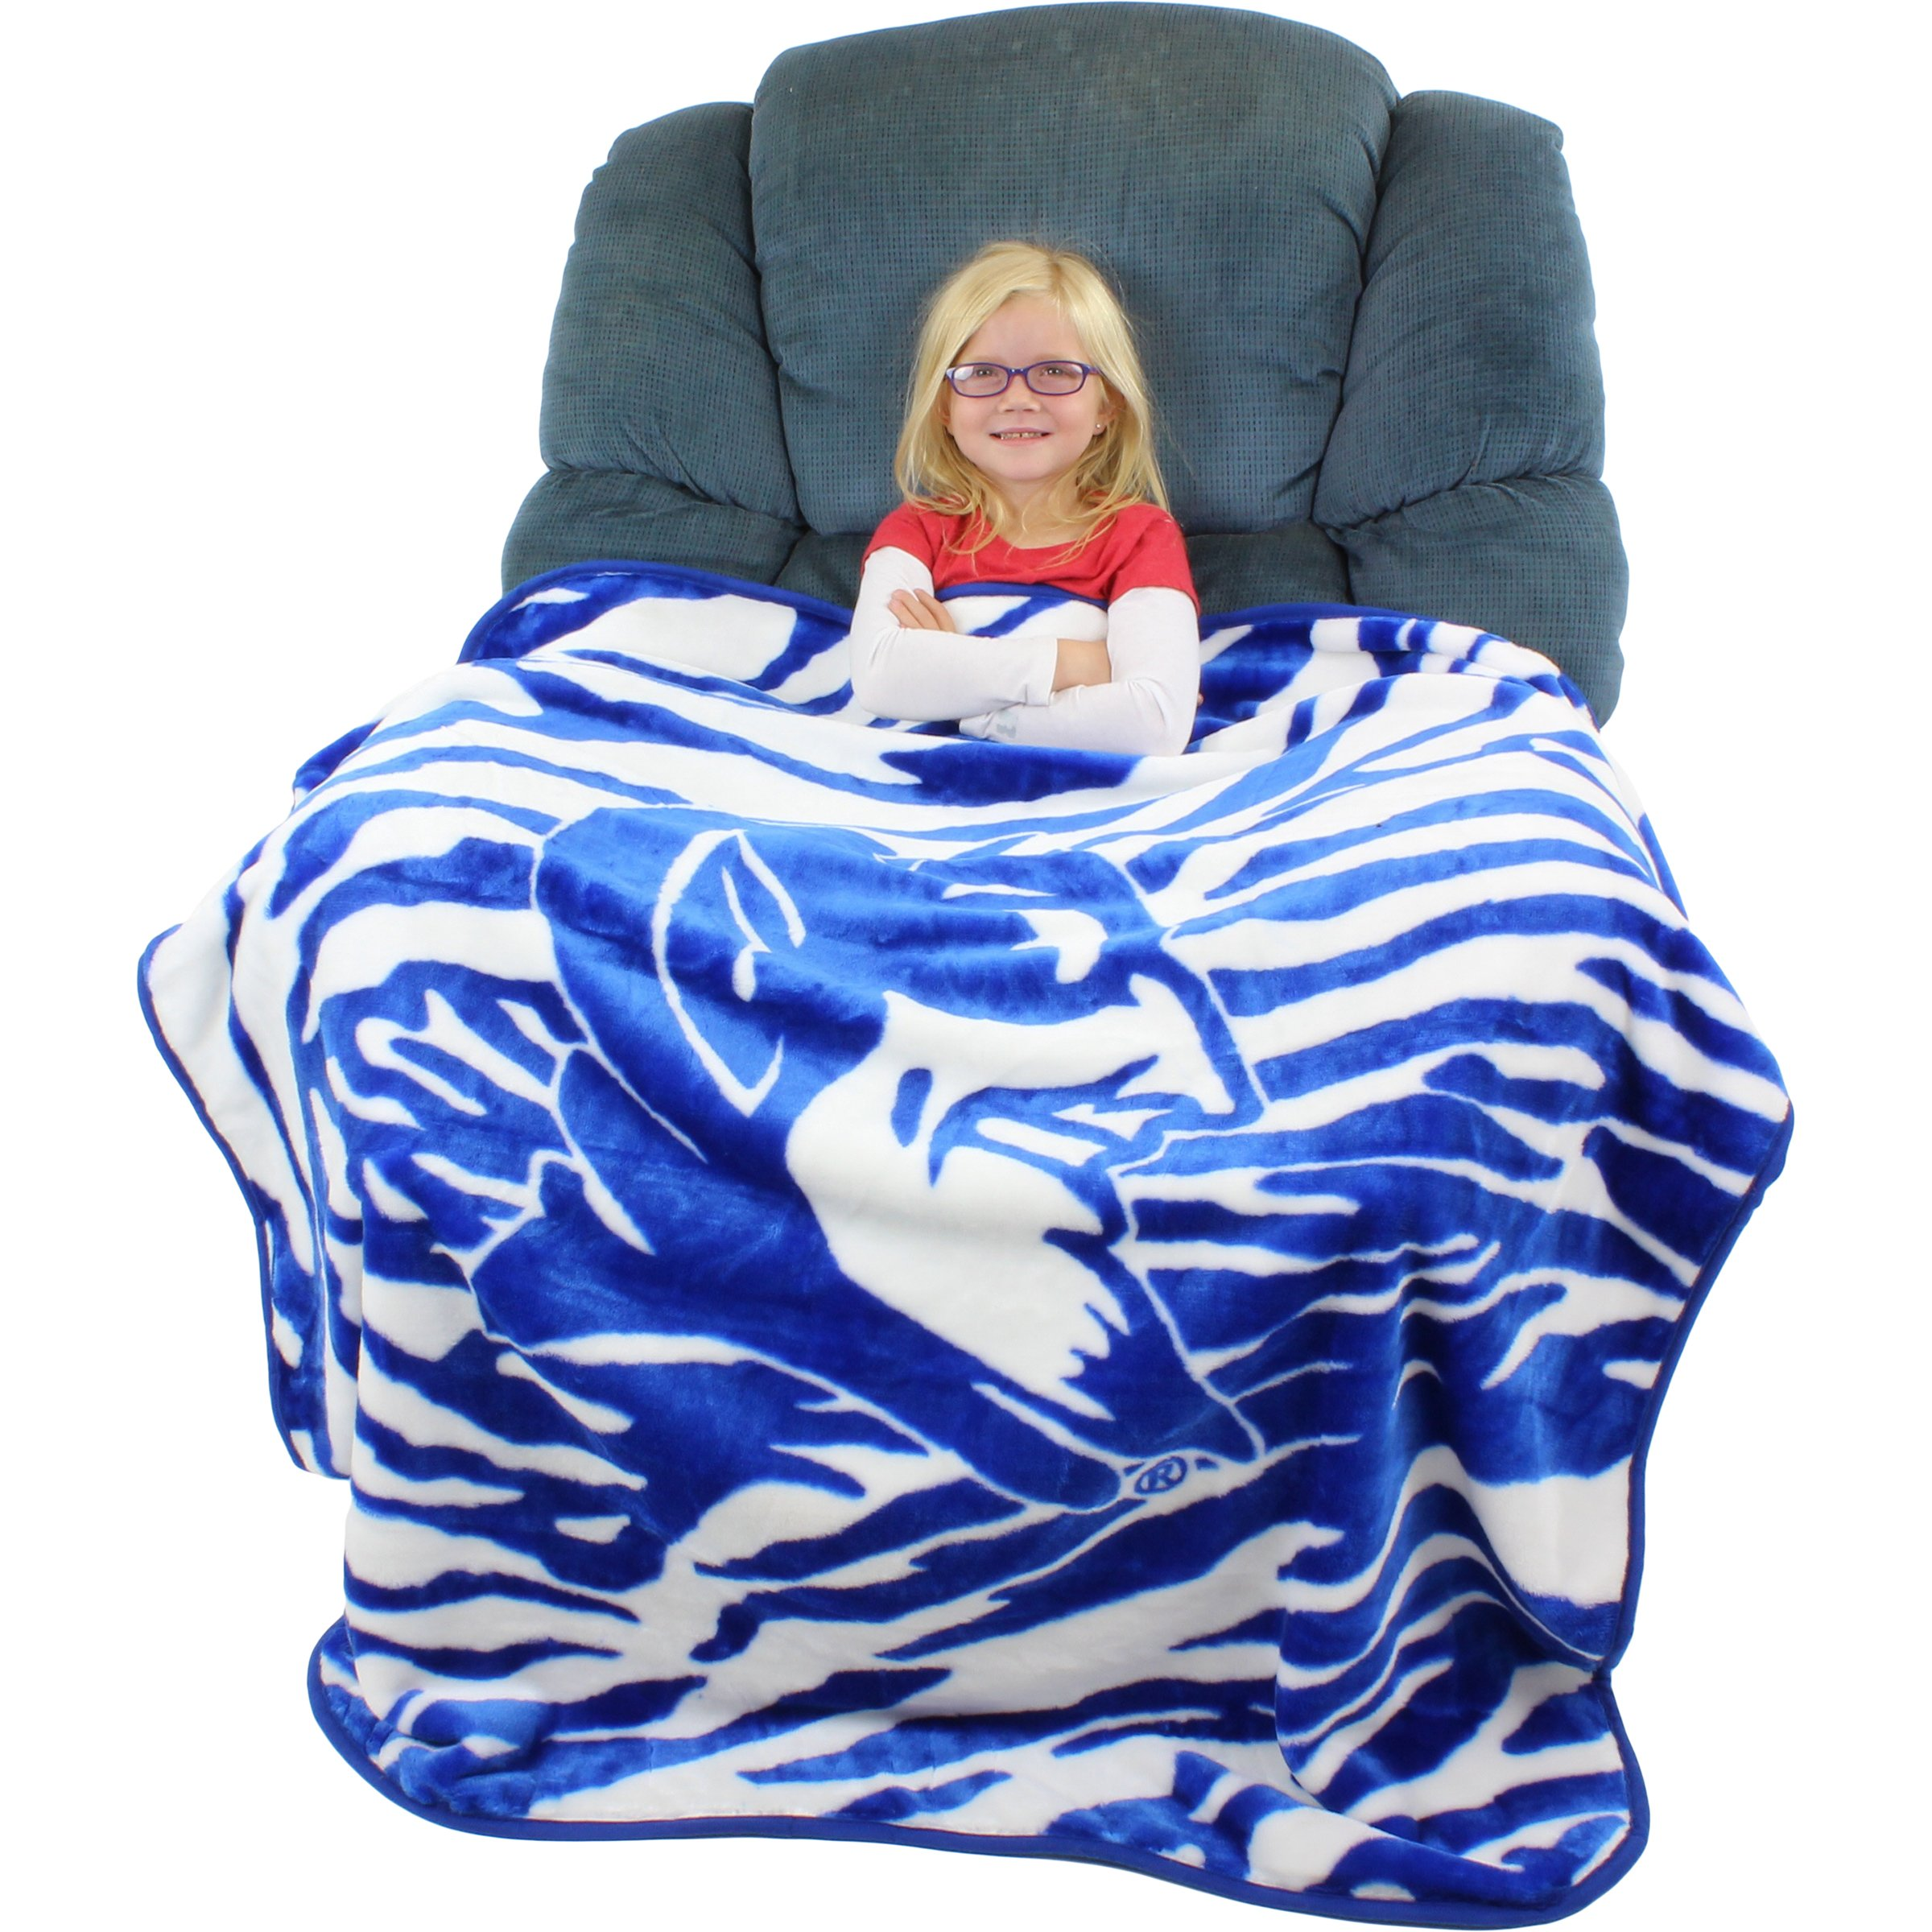 College Covers Duke Blue Devils Super Soft Raschel Throw Blanket, 50'' x 60''